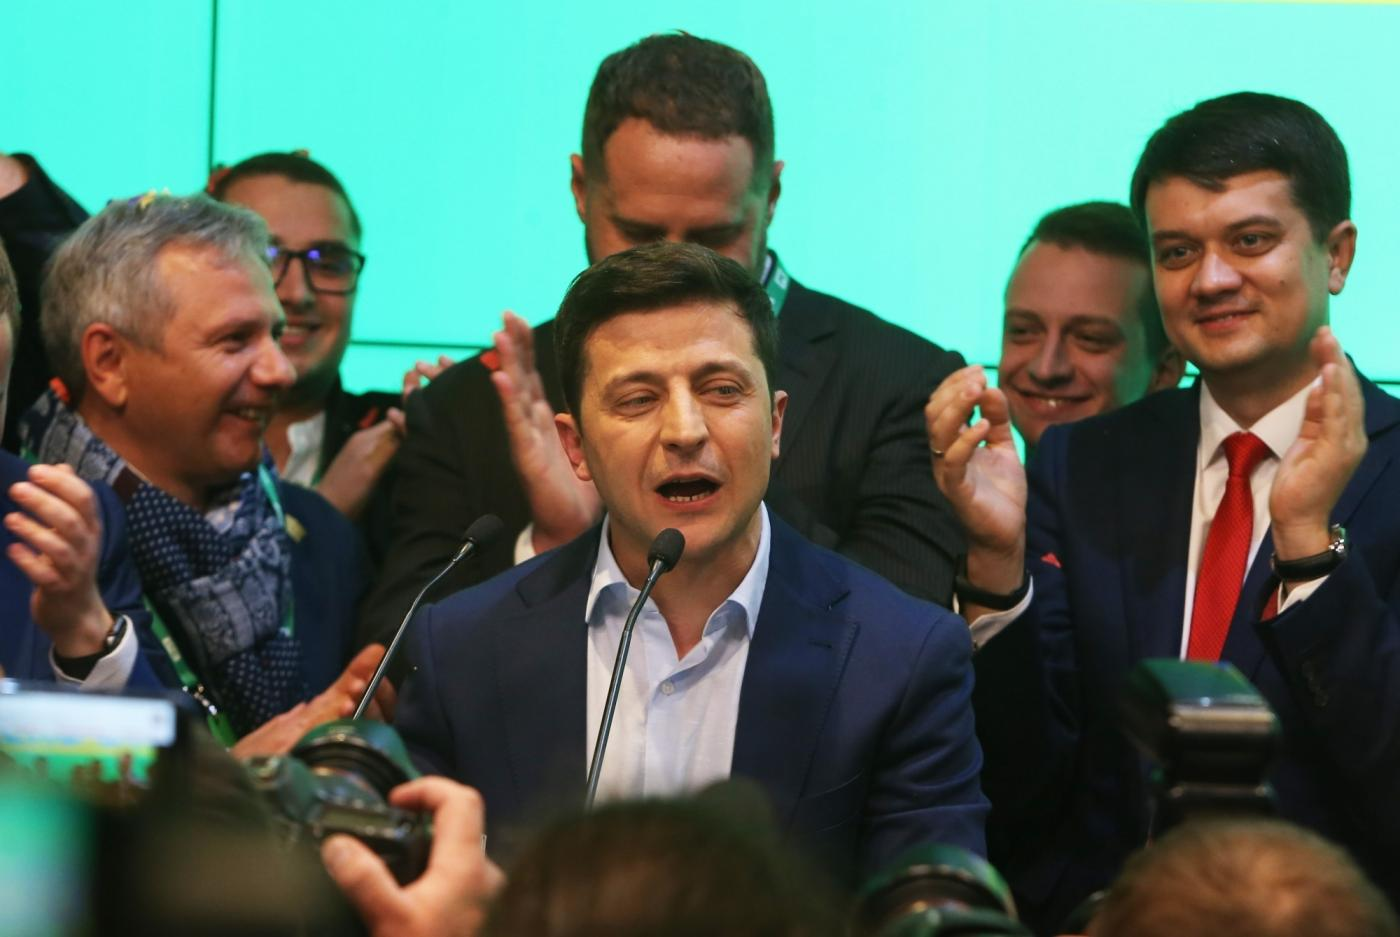 Kiev, April 21, 2019 (Xinhua) -- Ukraine's presidential candidate and actor Volodymyr Zelensky (C) delivers a speech at his campaign headquarters in Kiev, Ukraine, April 21, 2019. Ukrainian actor Volodymyr Zelensky thanked voters for supporting him in the second round of the country's presidential election held on Sunday. Earlier in the day, the national exit poll showed that Zelensky won the country's presidential election by gaining 73.2 percent of the votes in the second round as of 6 p.m. local time (1500 GMT). (Xinhua/Sergey/IANS) by .